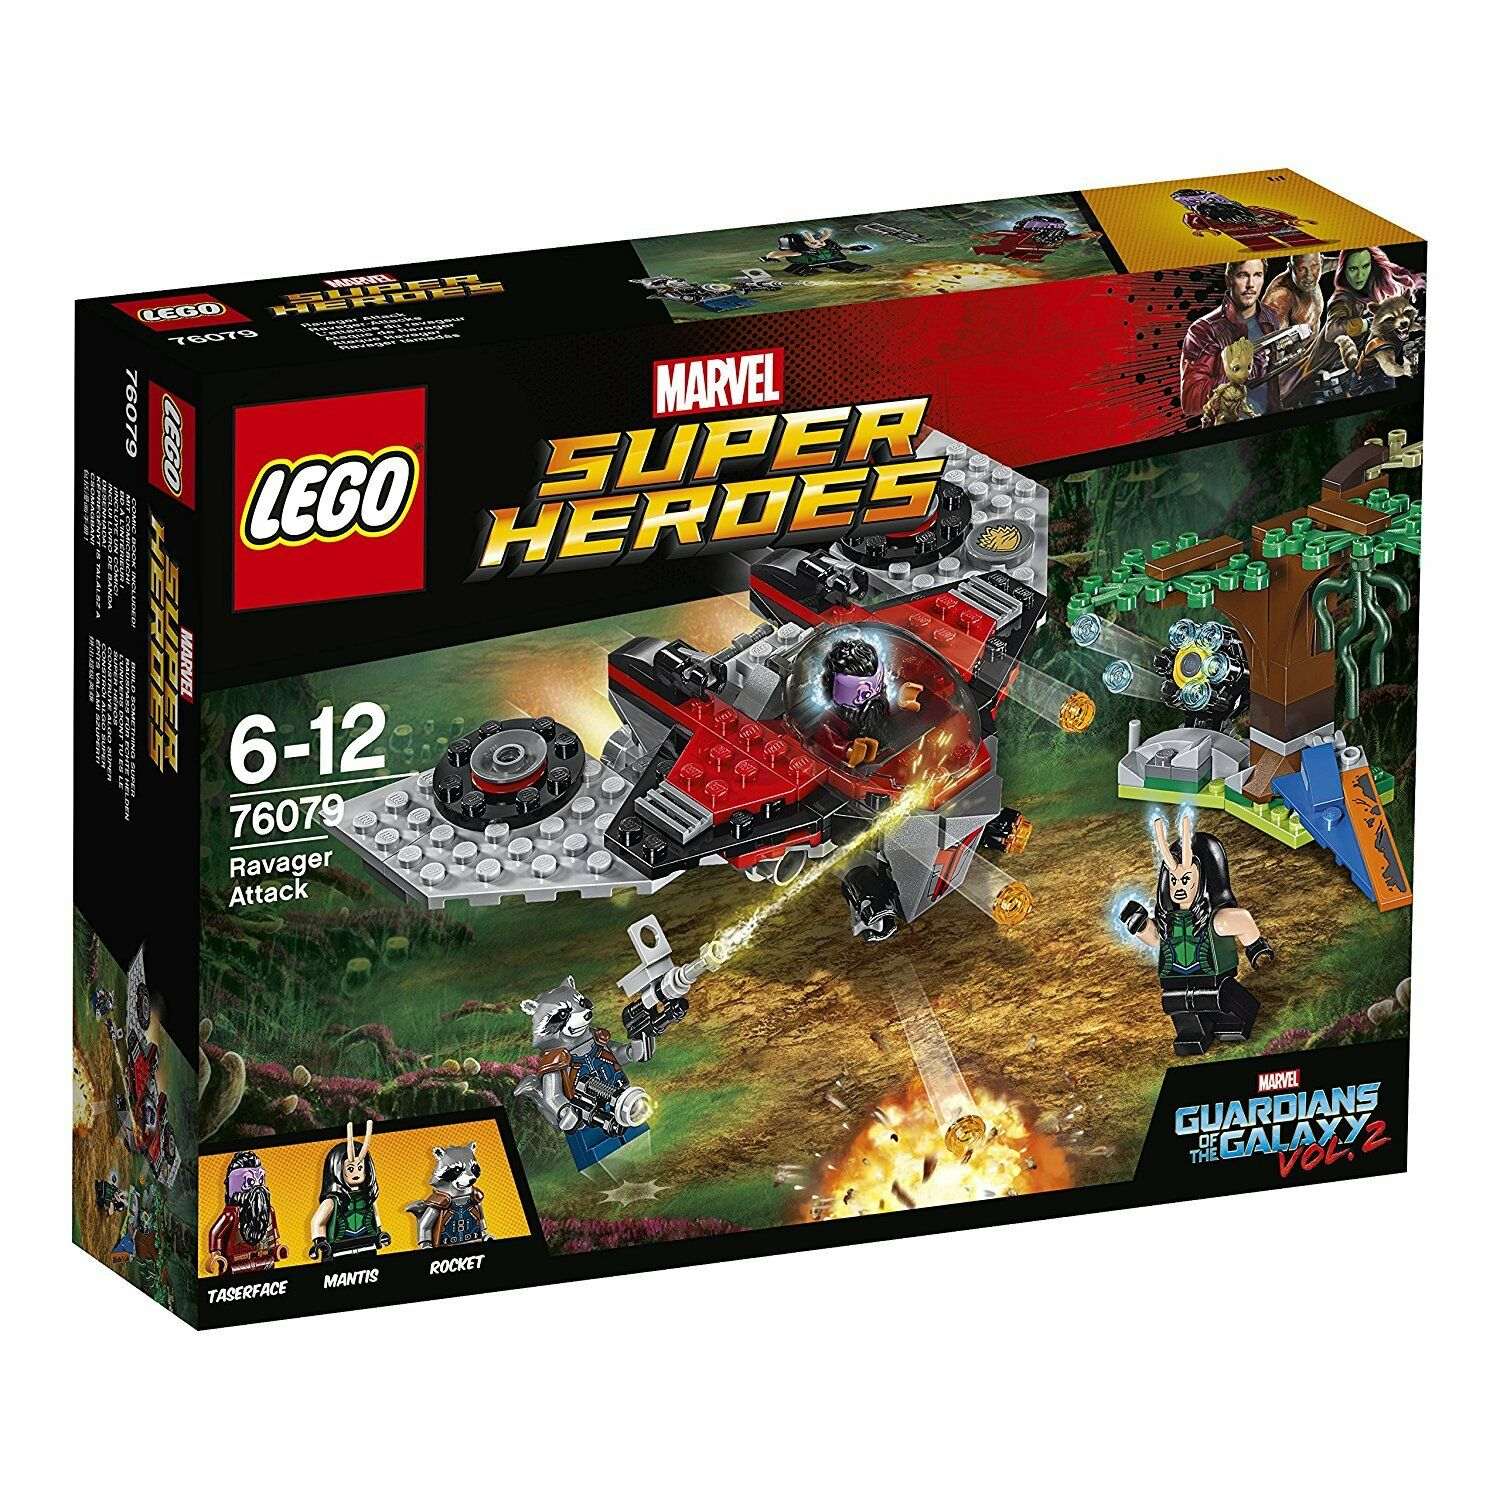 Heroes Volume The Super Of Lego Guardians Galaxy 2 Neuf 76079 3lFKuT1Jc